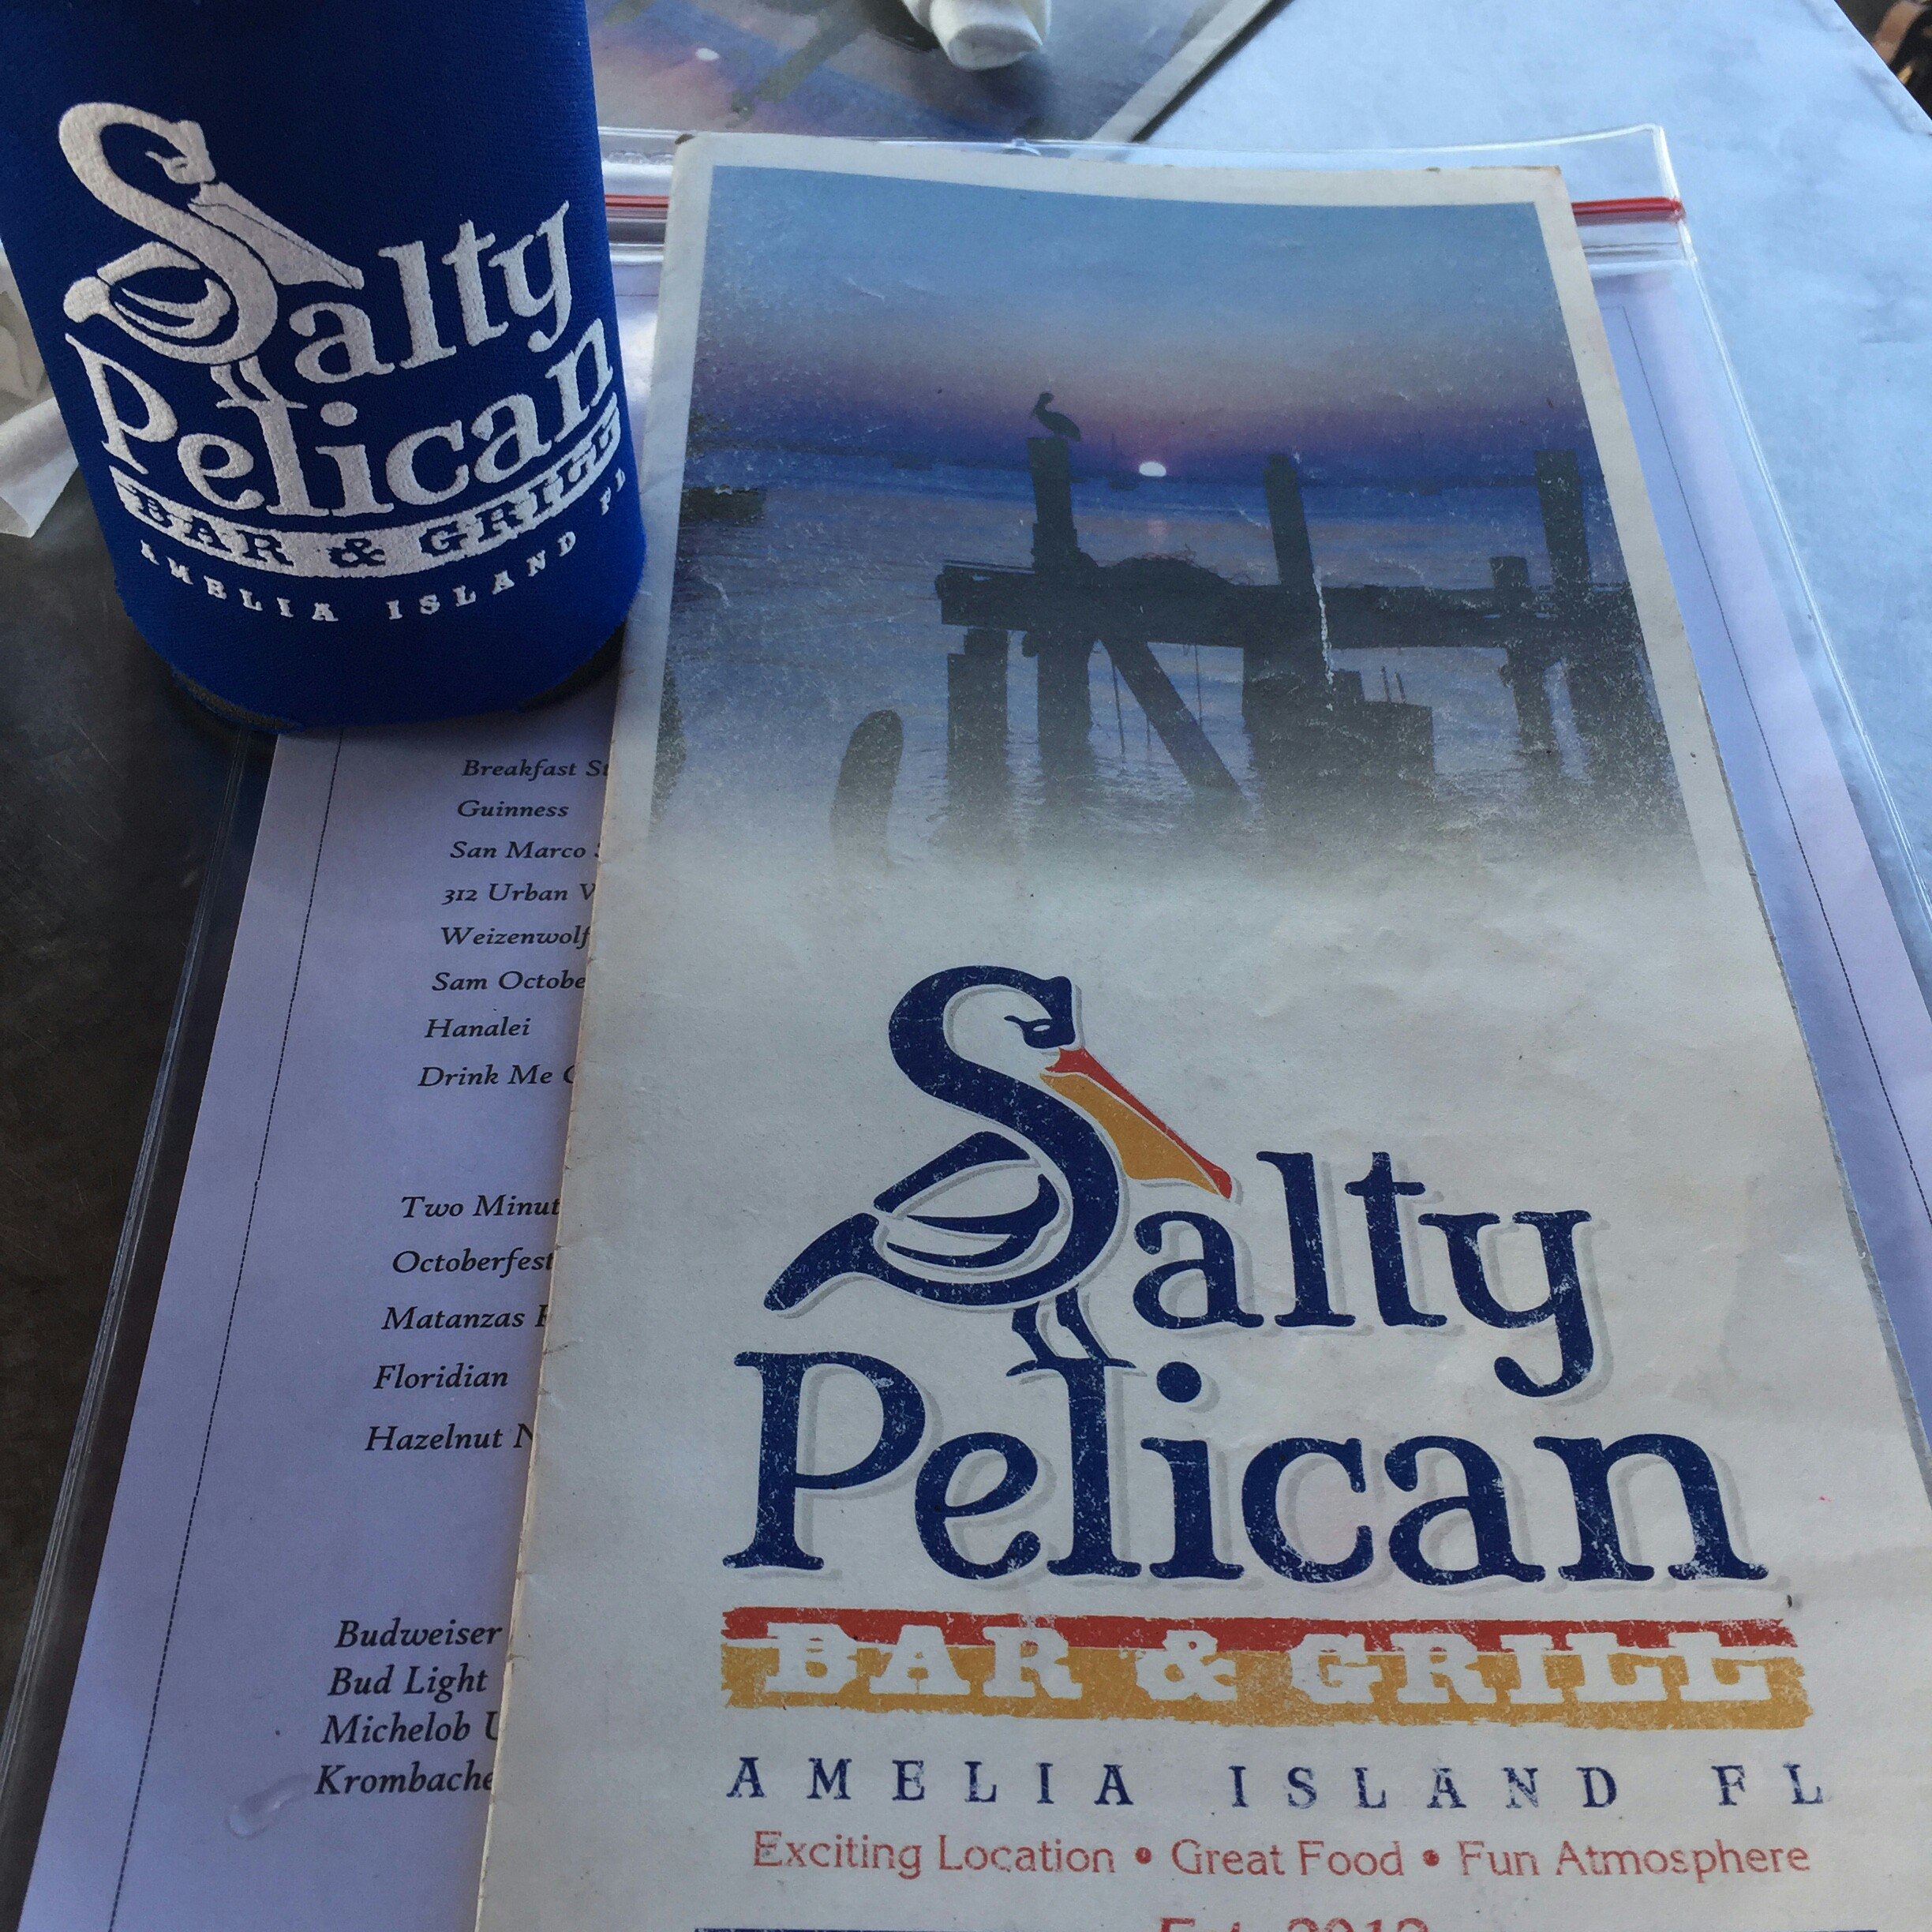 Picture of a menu and beer at Salty Pelican